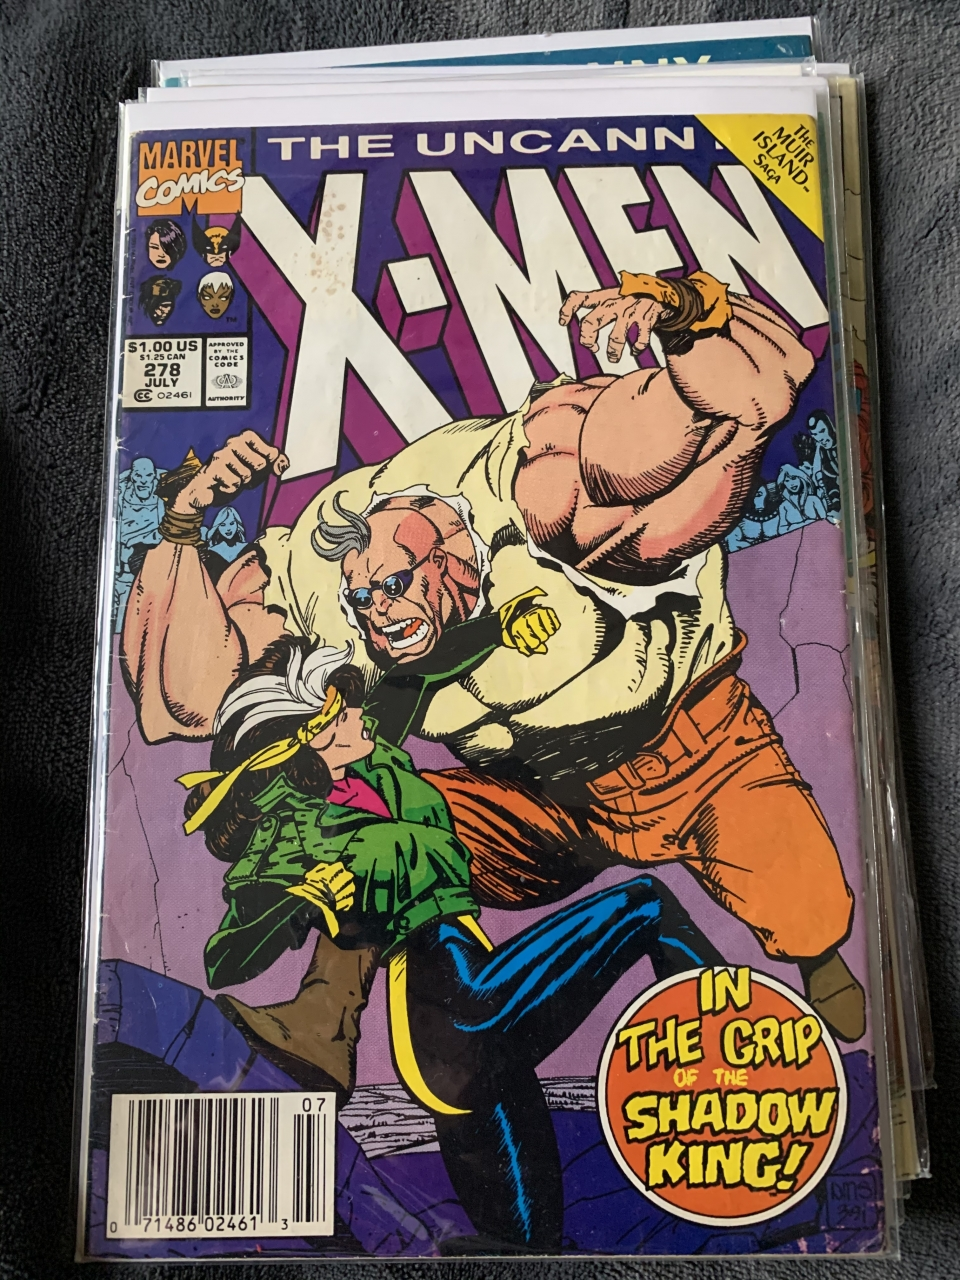 Stopped by Collected: Your Pop Culture Headquarters and picked up these bad boys today. #286 is a Jim Lee cover and #309 is a John Romita Jr cover. The CLZ app made it so easy - I simply sent Ron a screen shot of my Uncanny X-Men inventory and asked him to fill in $15.00 worth of gaps.